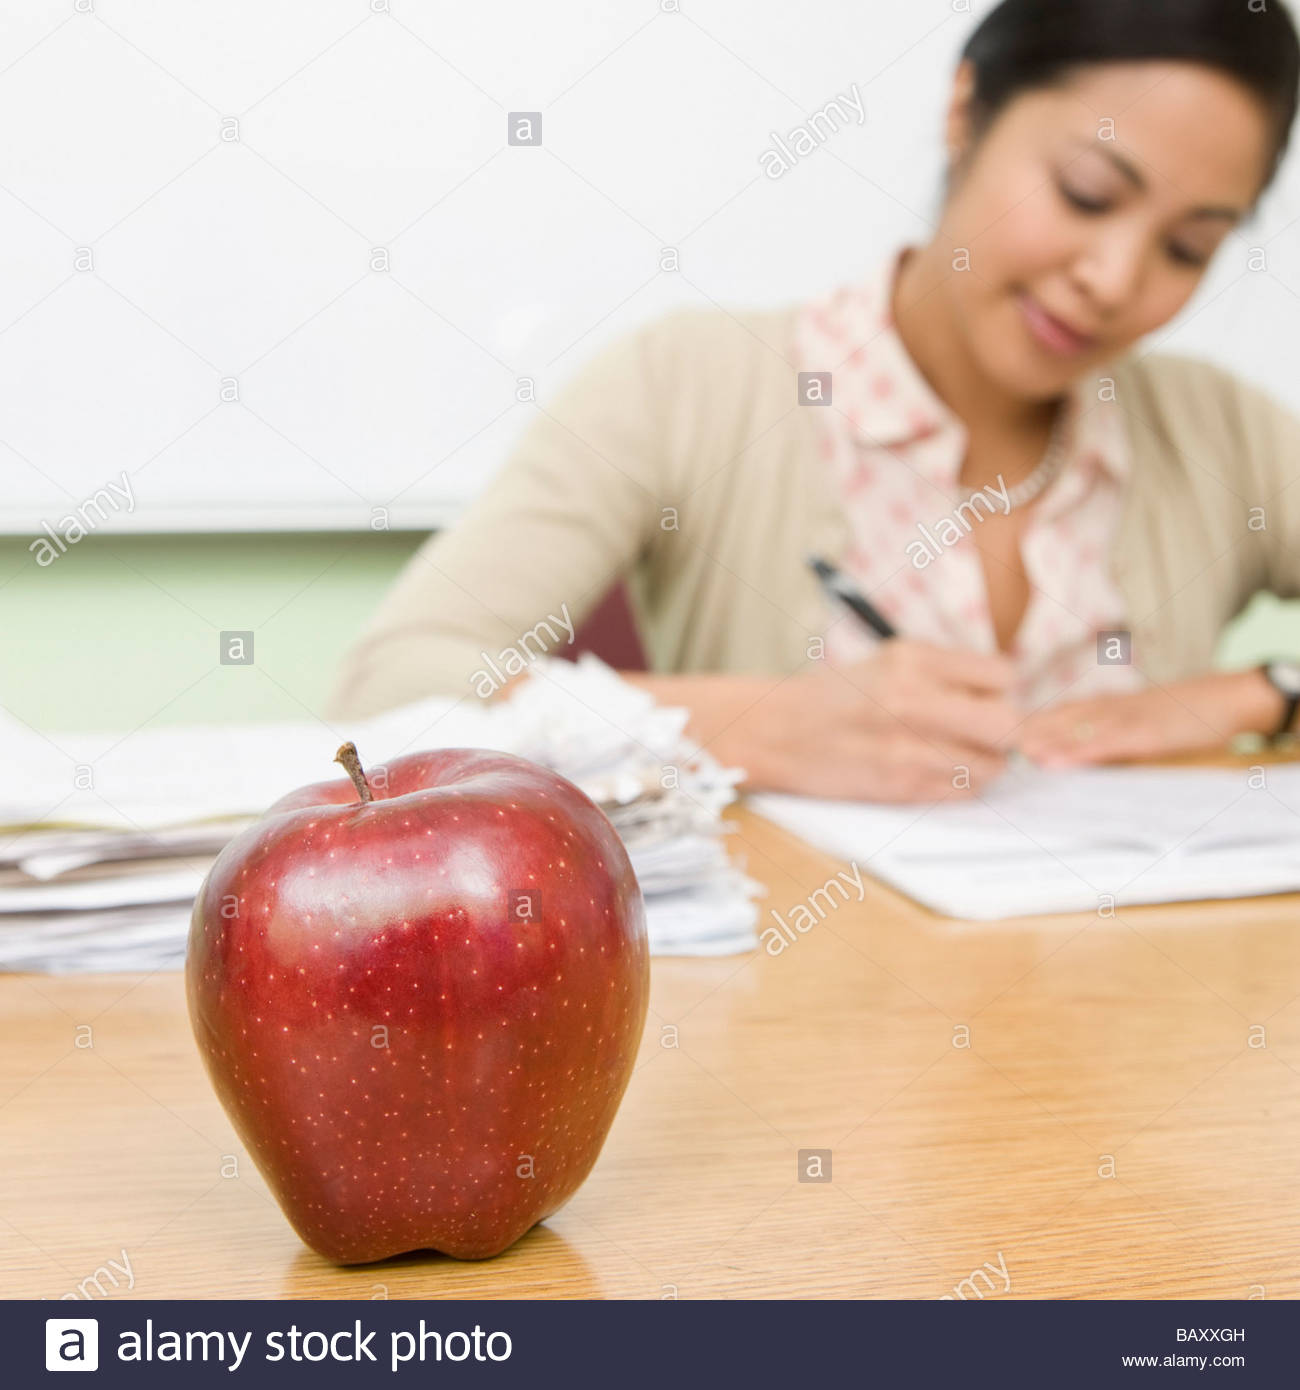 Teacher grading papers with apple in foreground - Stock Image